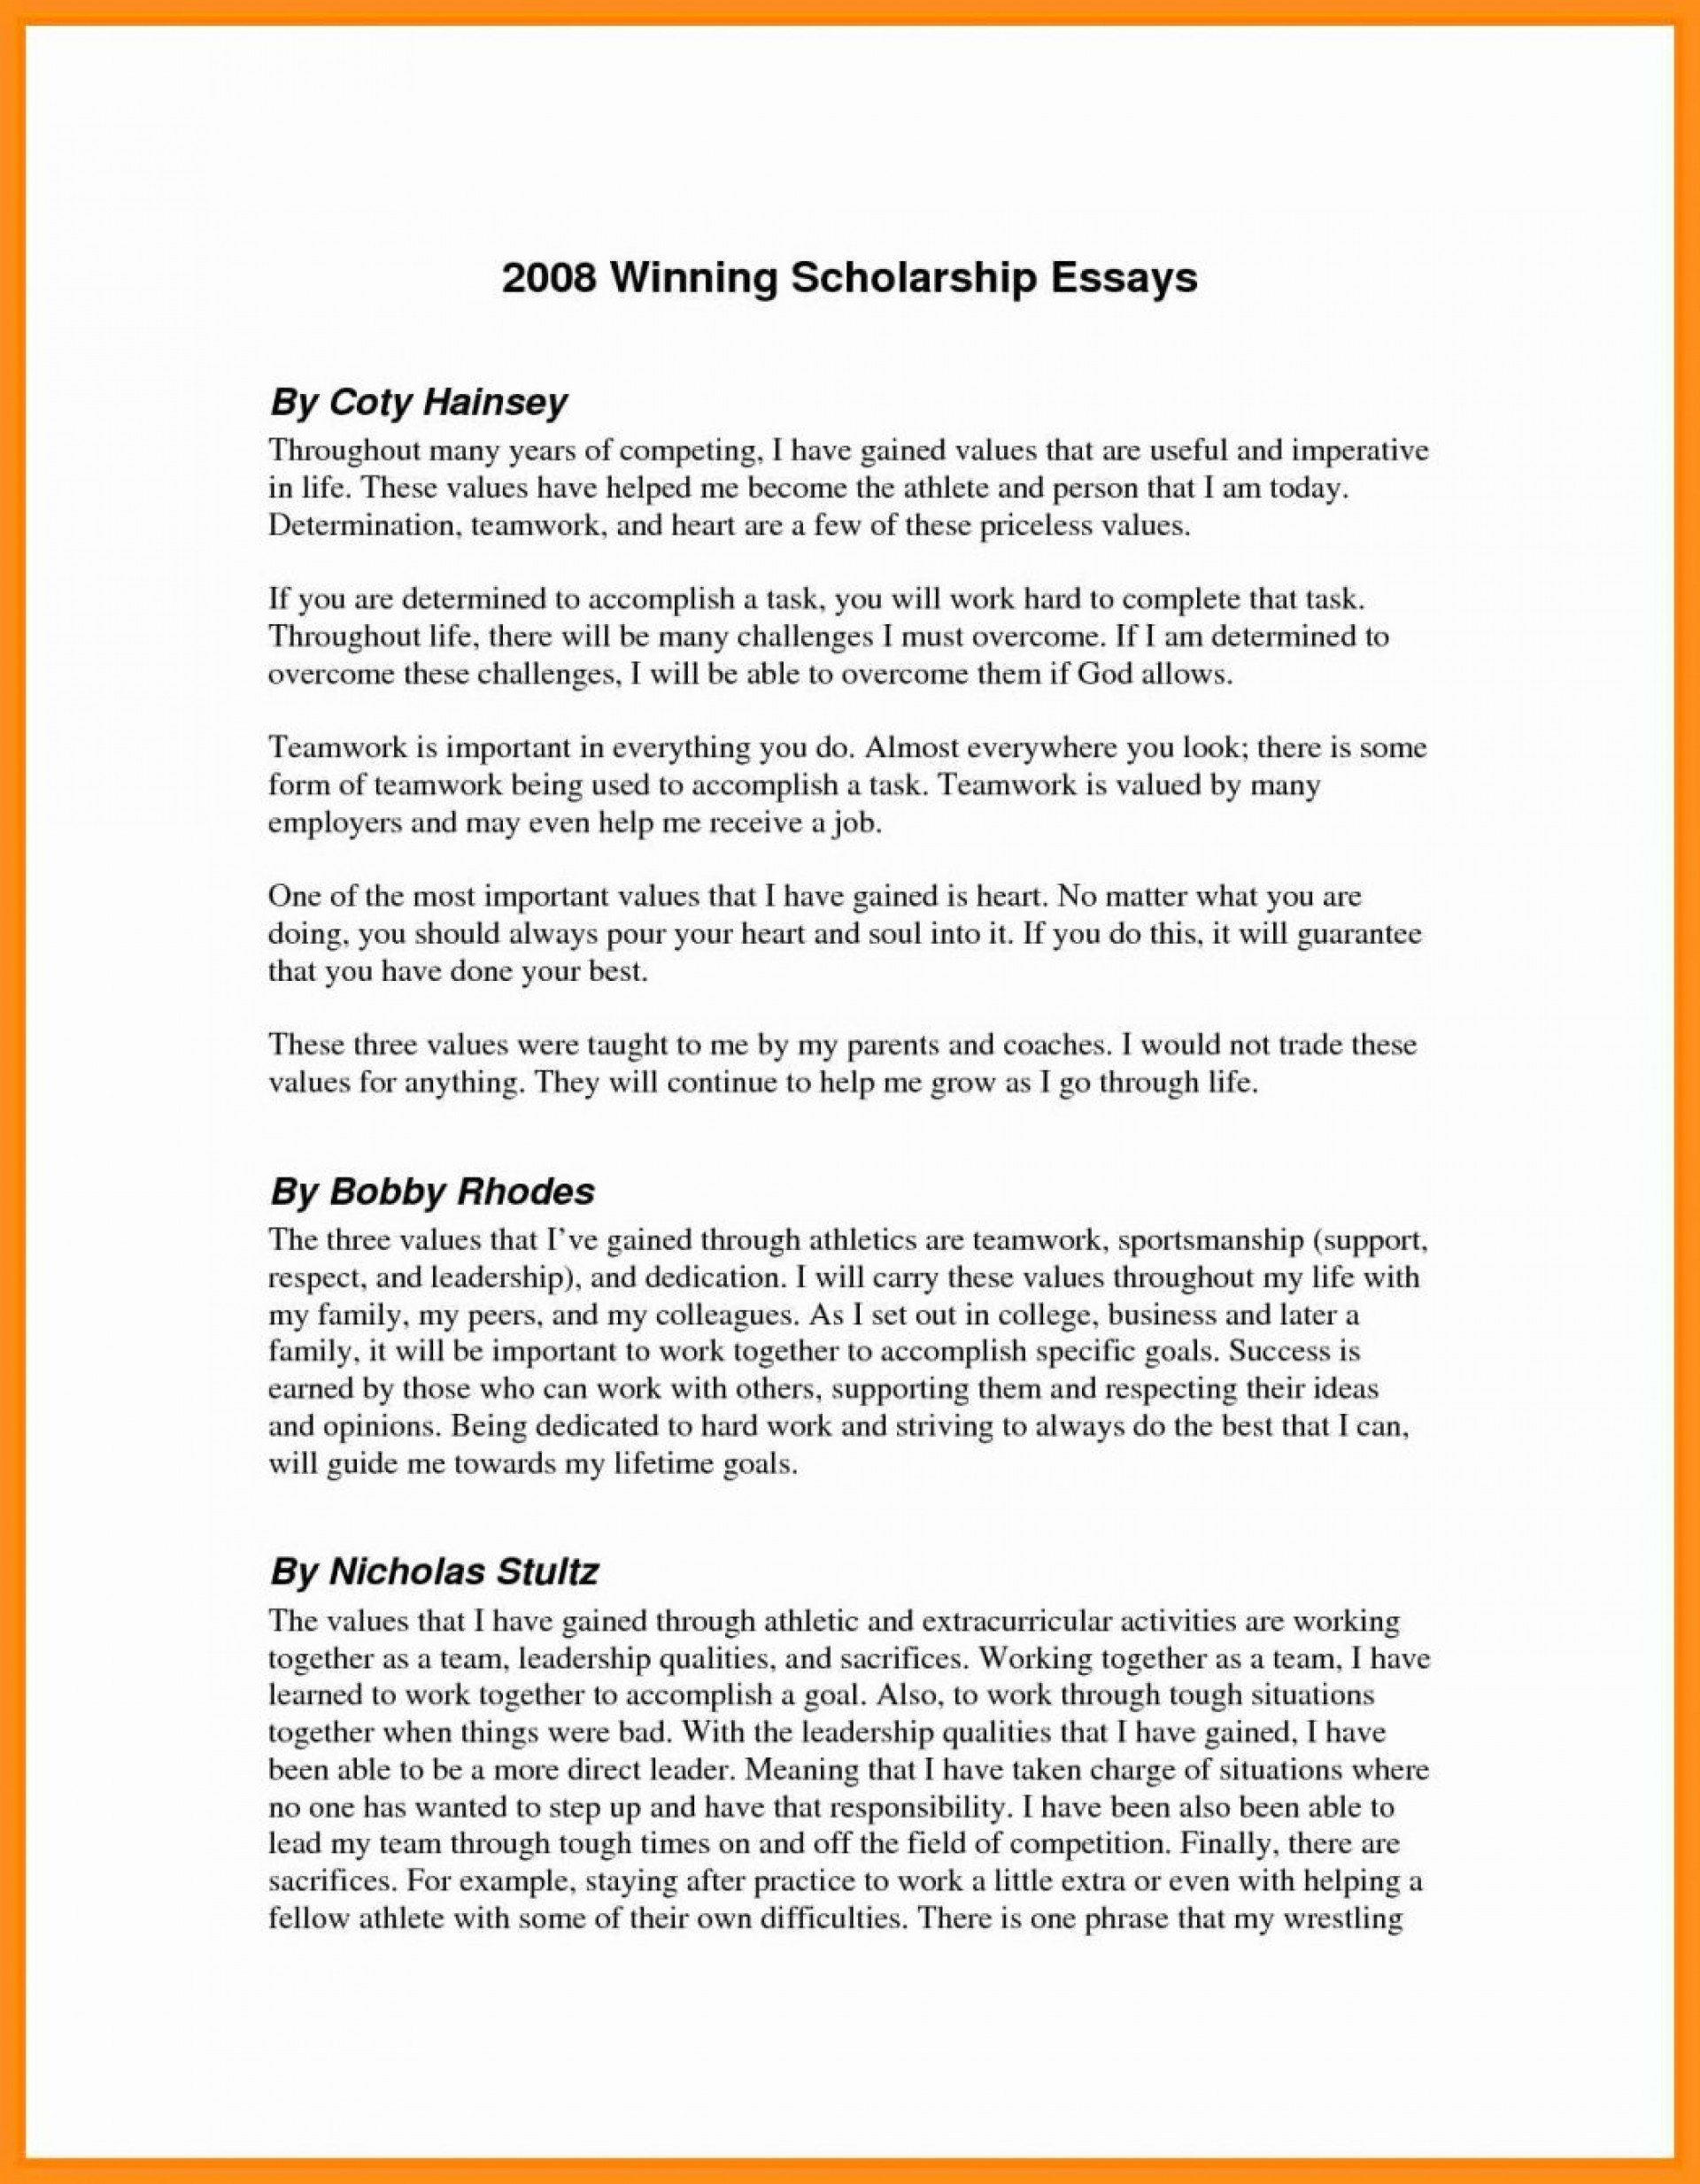 020 Examples Of Scholarshipsay Winning Resume Financi Pdf Career Goals Nursing About Yourself Financial Need Words Why Do You Deserve This Single Mother 1048x1347 Word Dreaded 500 Scholarship Essay Samples How To Write A 1920